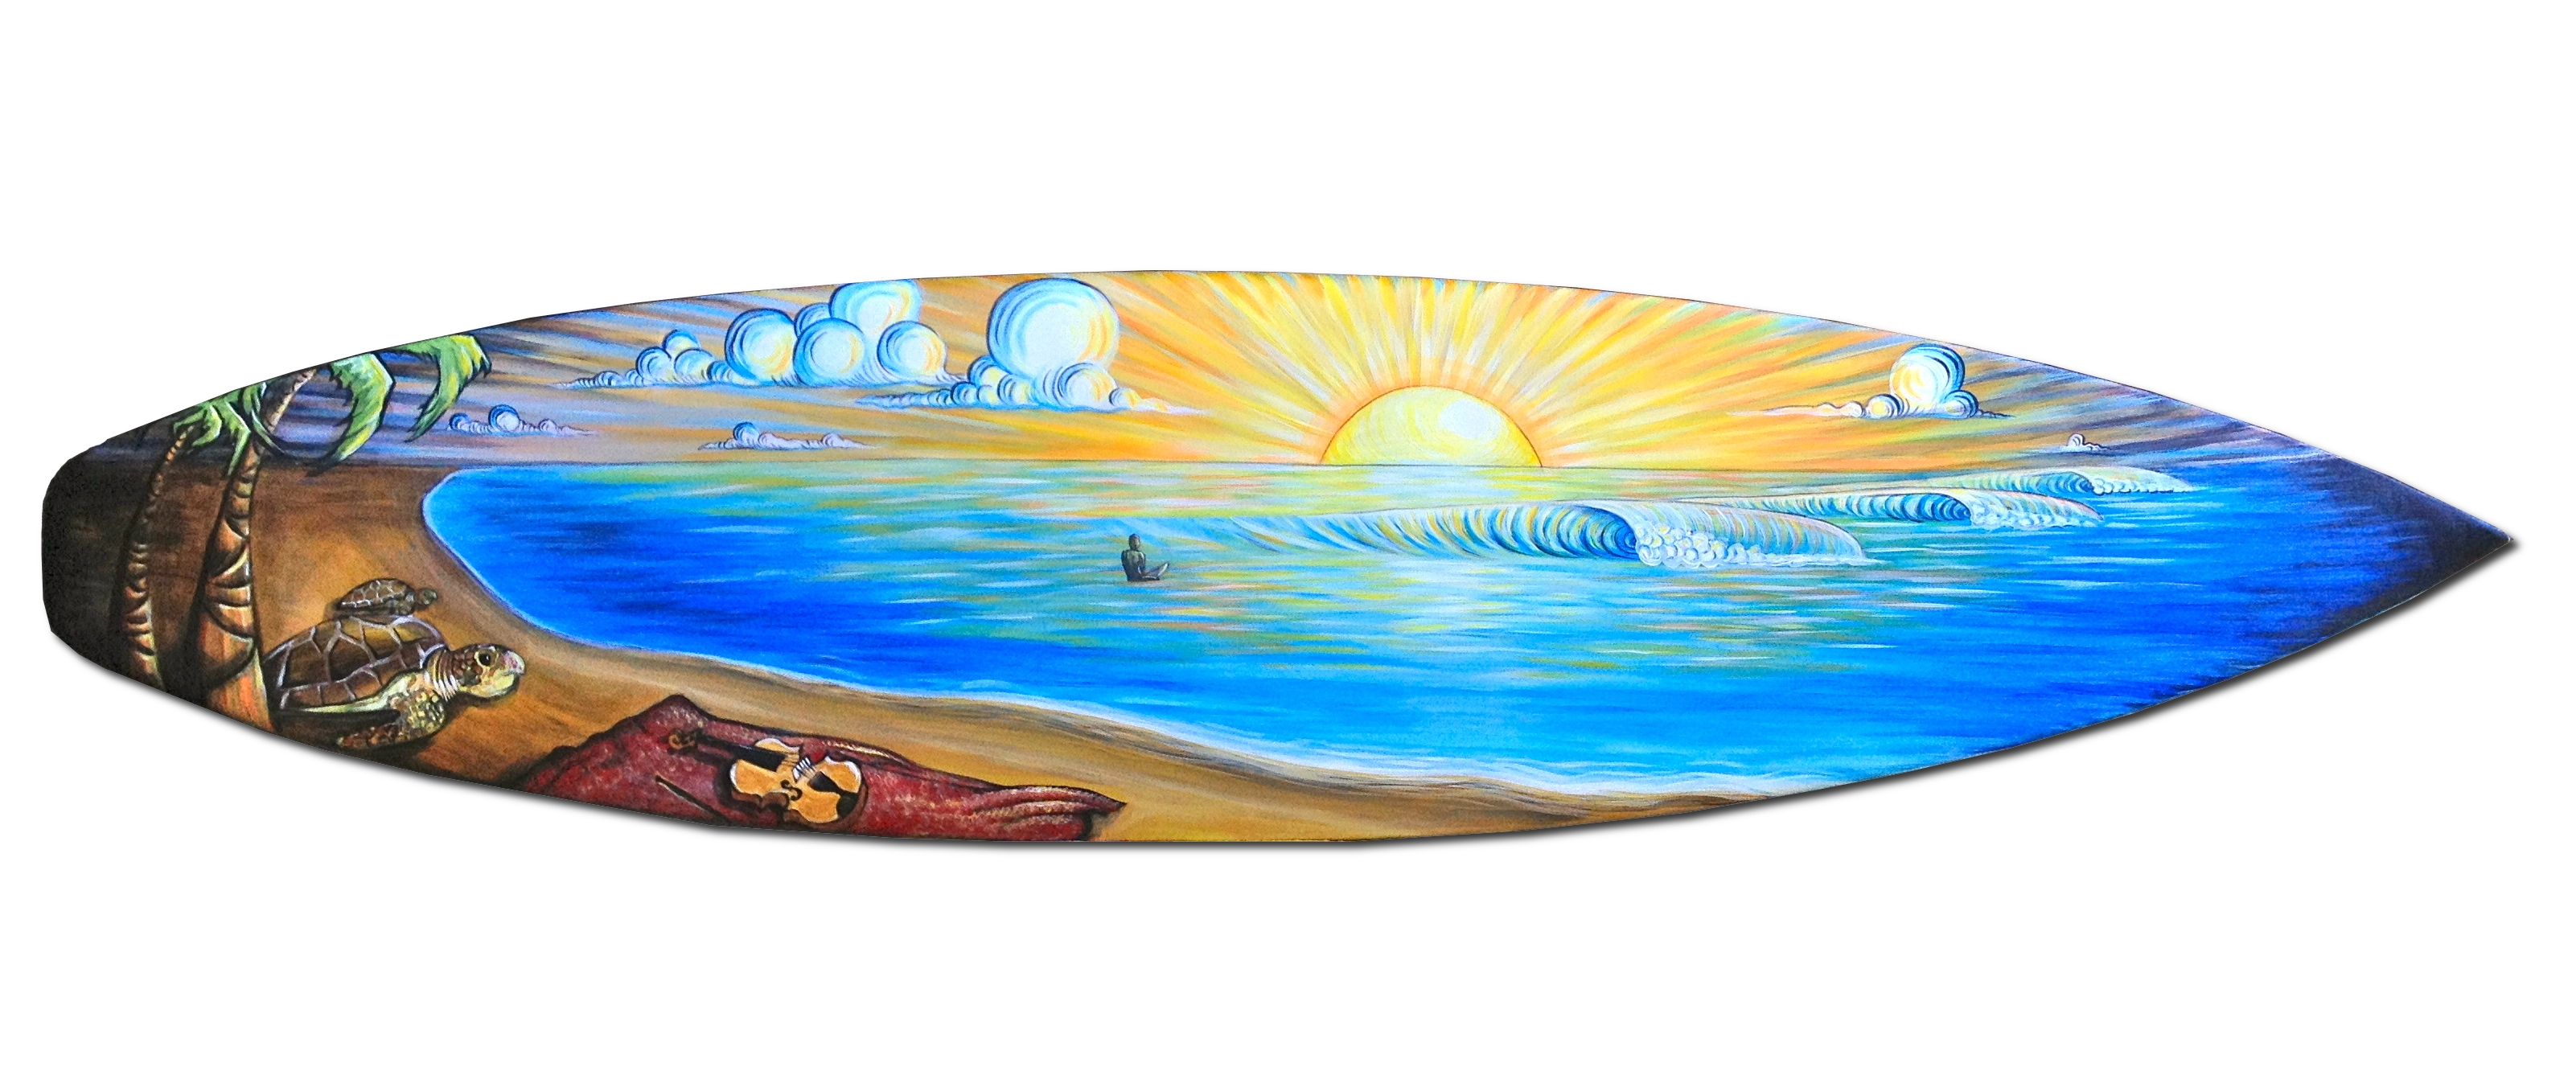 painted surfboard clipart clipground